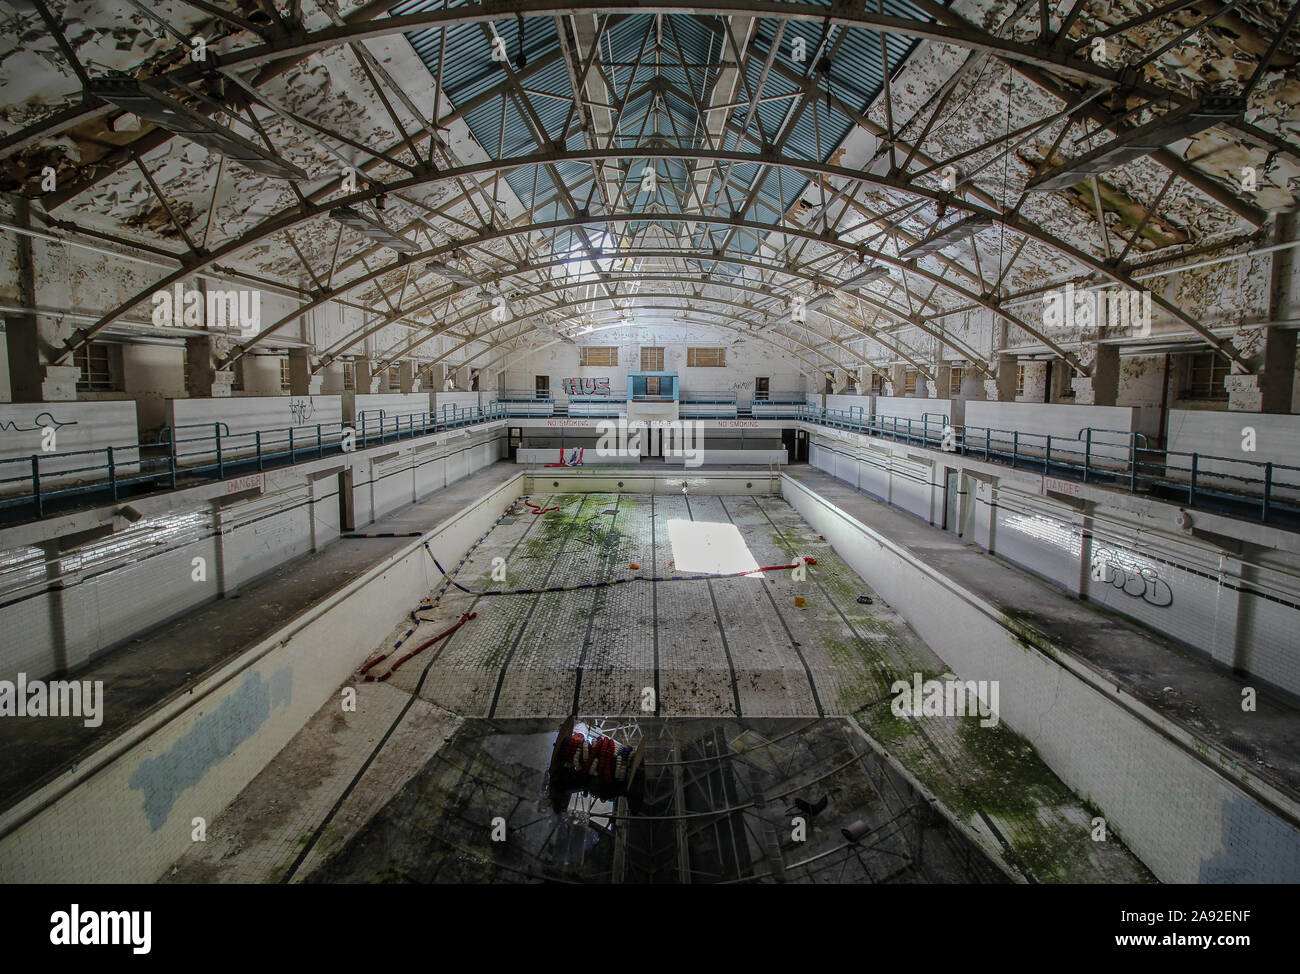 Page 2 Abandoned Pool High Resolution Stock Photography And Images Alamy